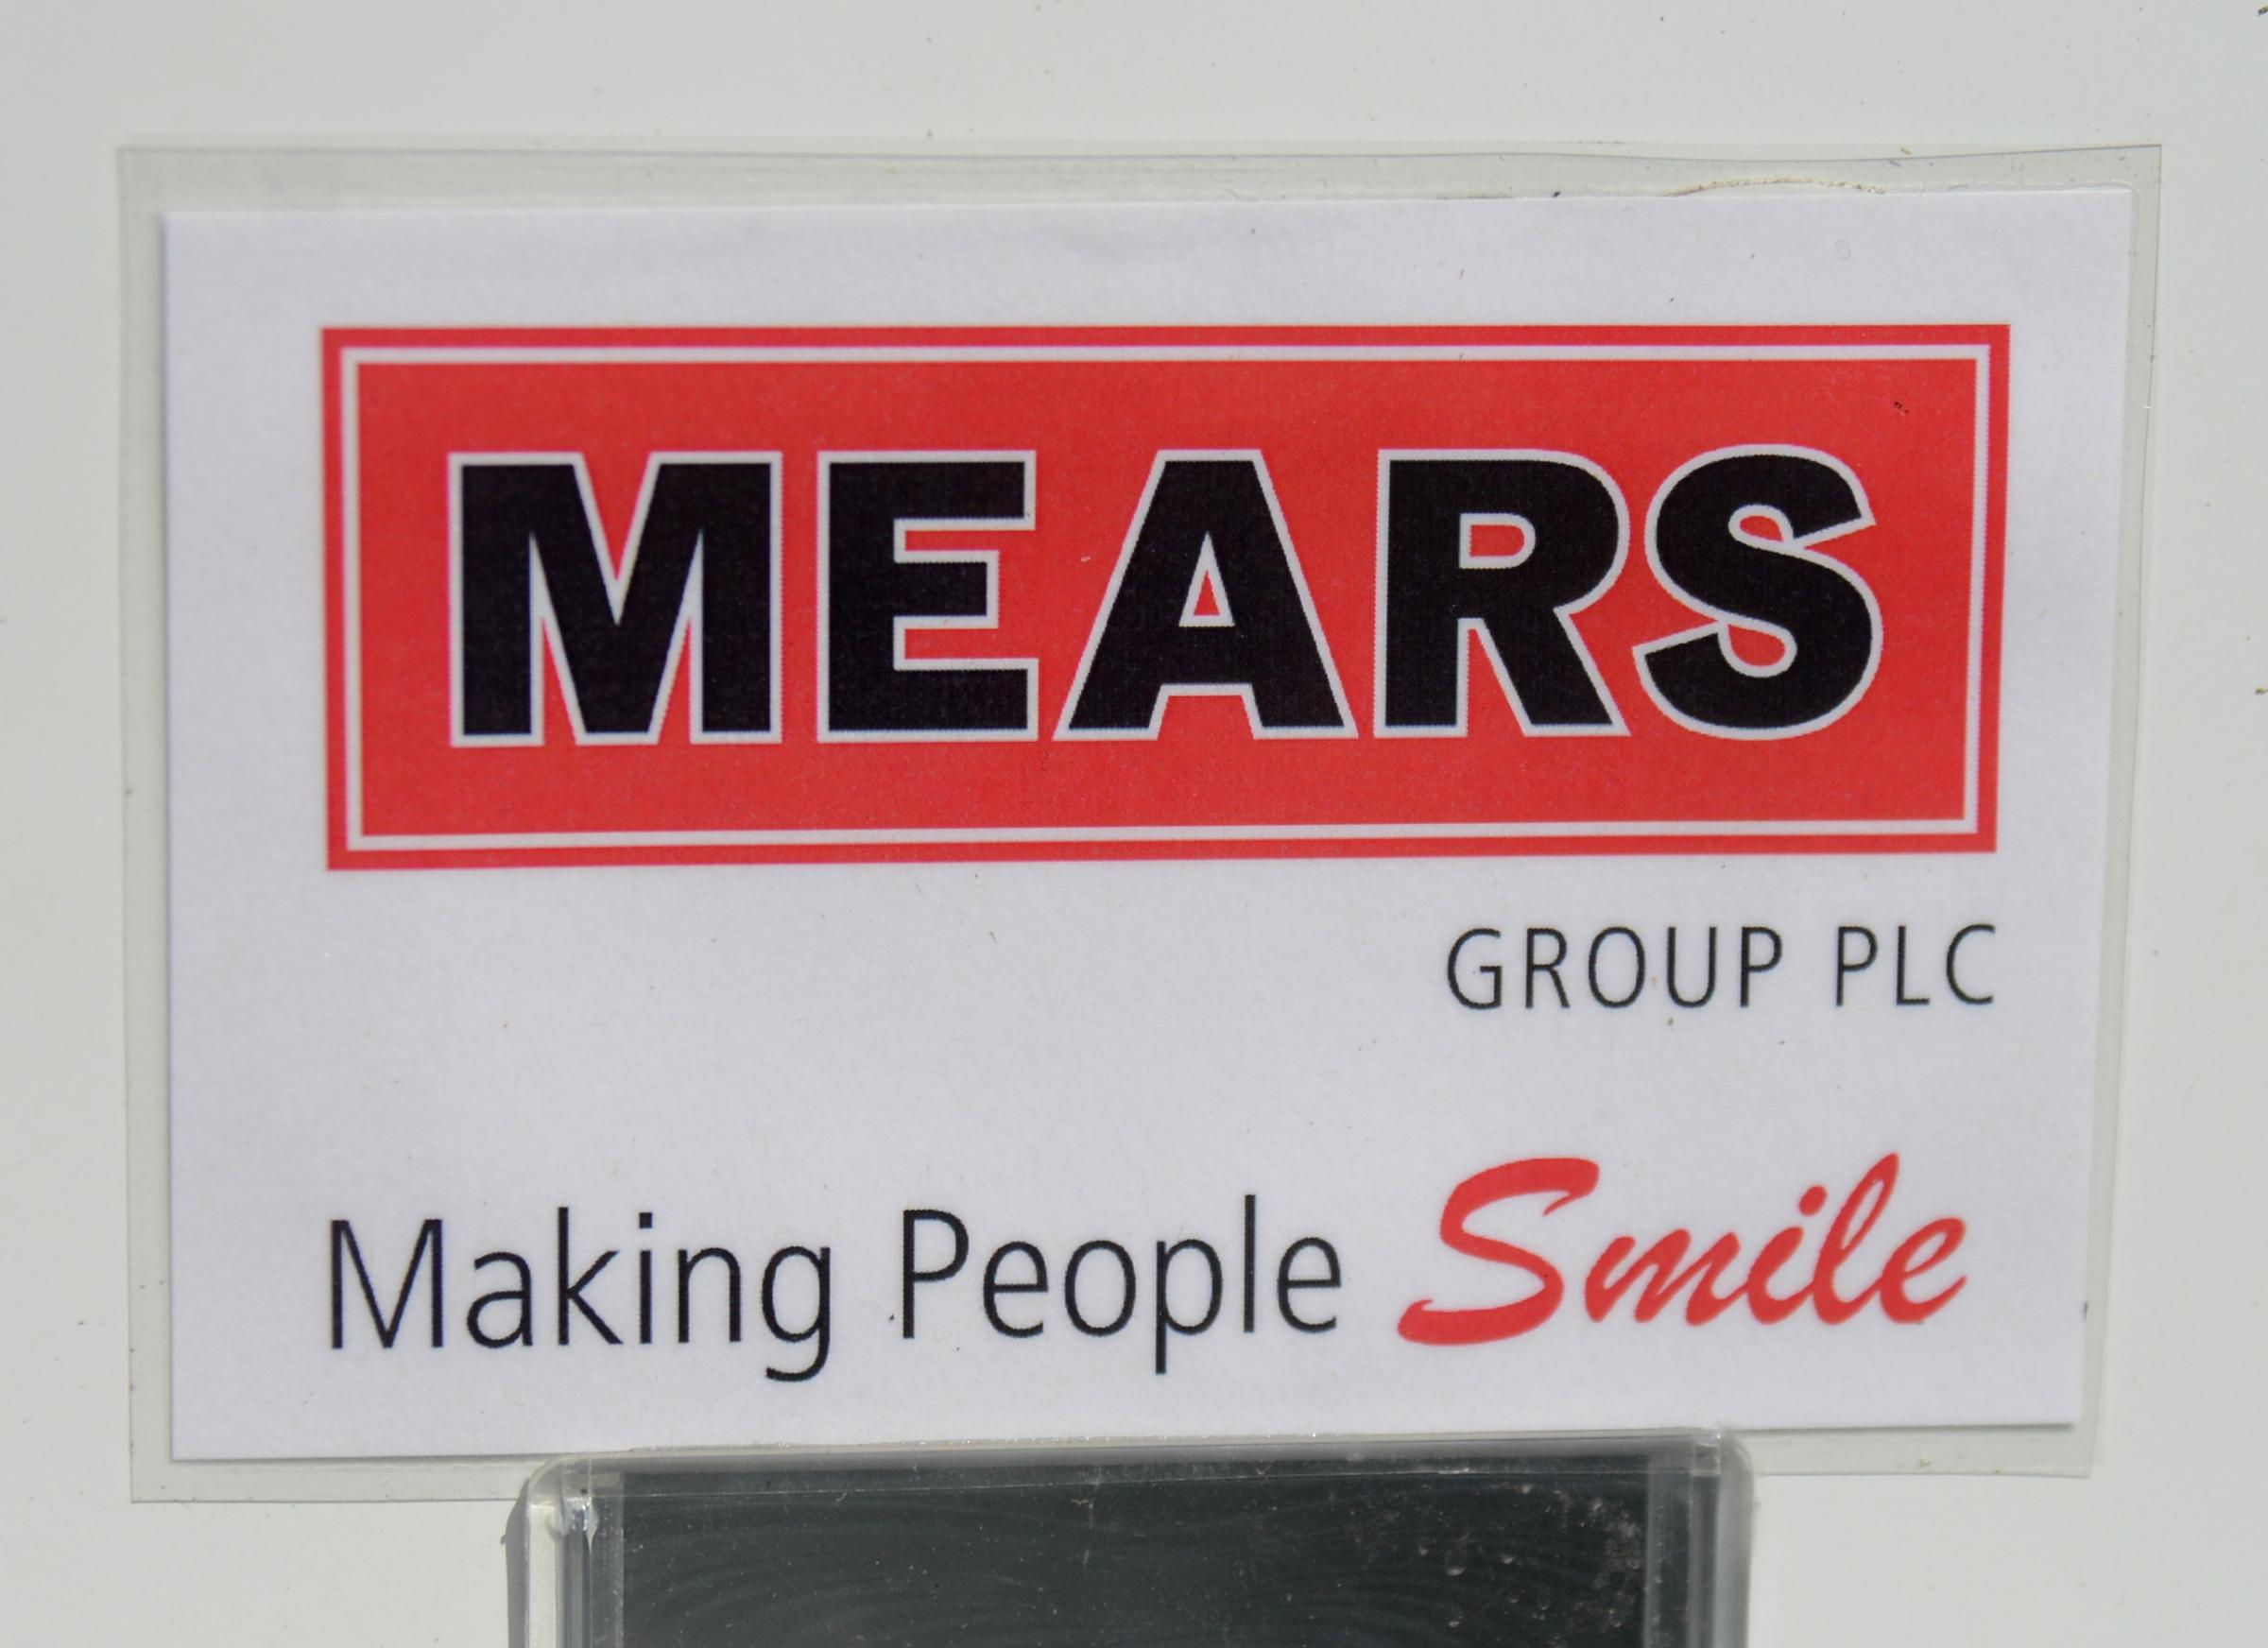 Council contractor Mears set to cut jobs